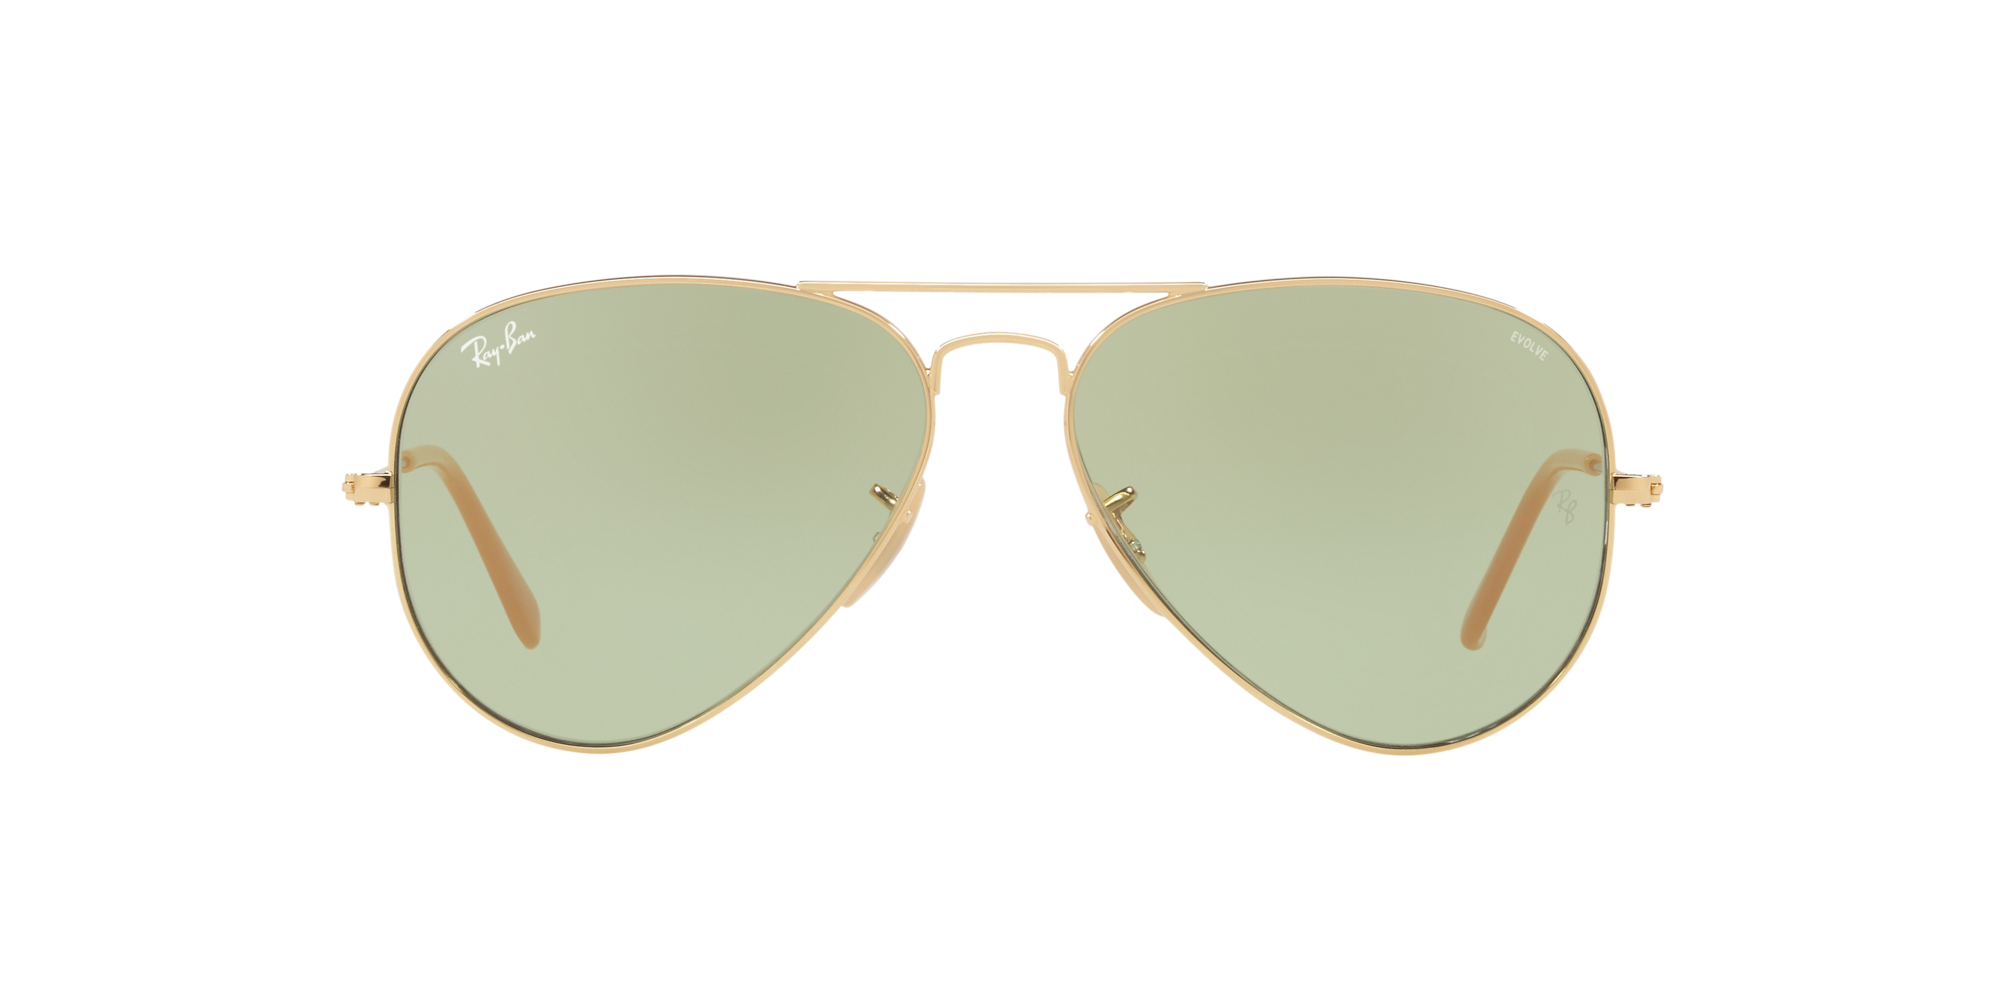 RAY-BAN AVIATOR LARGE METAL  RB 3025 90644C FOTOCROMÁTICAS-360